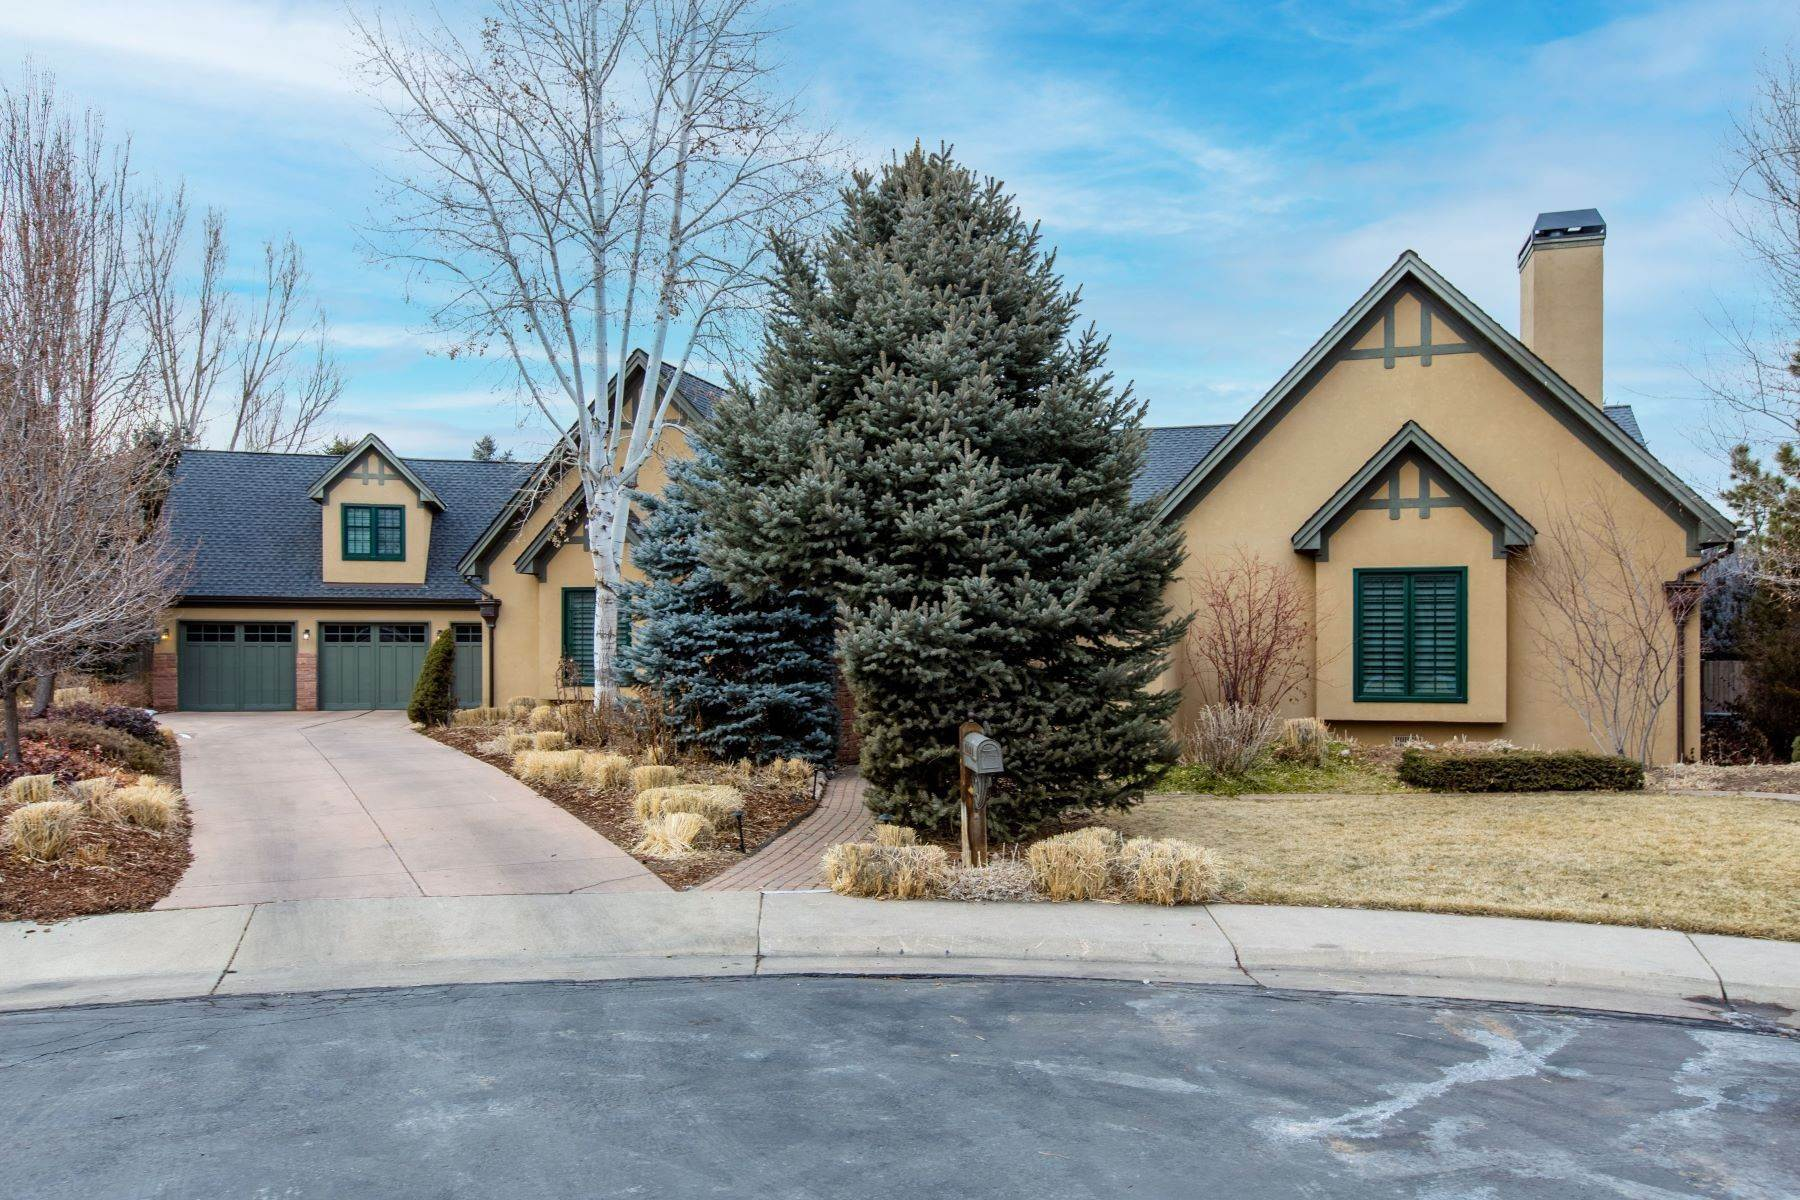 Single Family Homes for Sale at Rare Ranch Home with Fabulous Primary Wing! 5959 S Ogden Court Centennial, Colorado 80121 United States